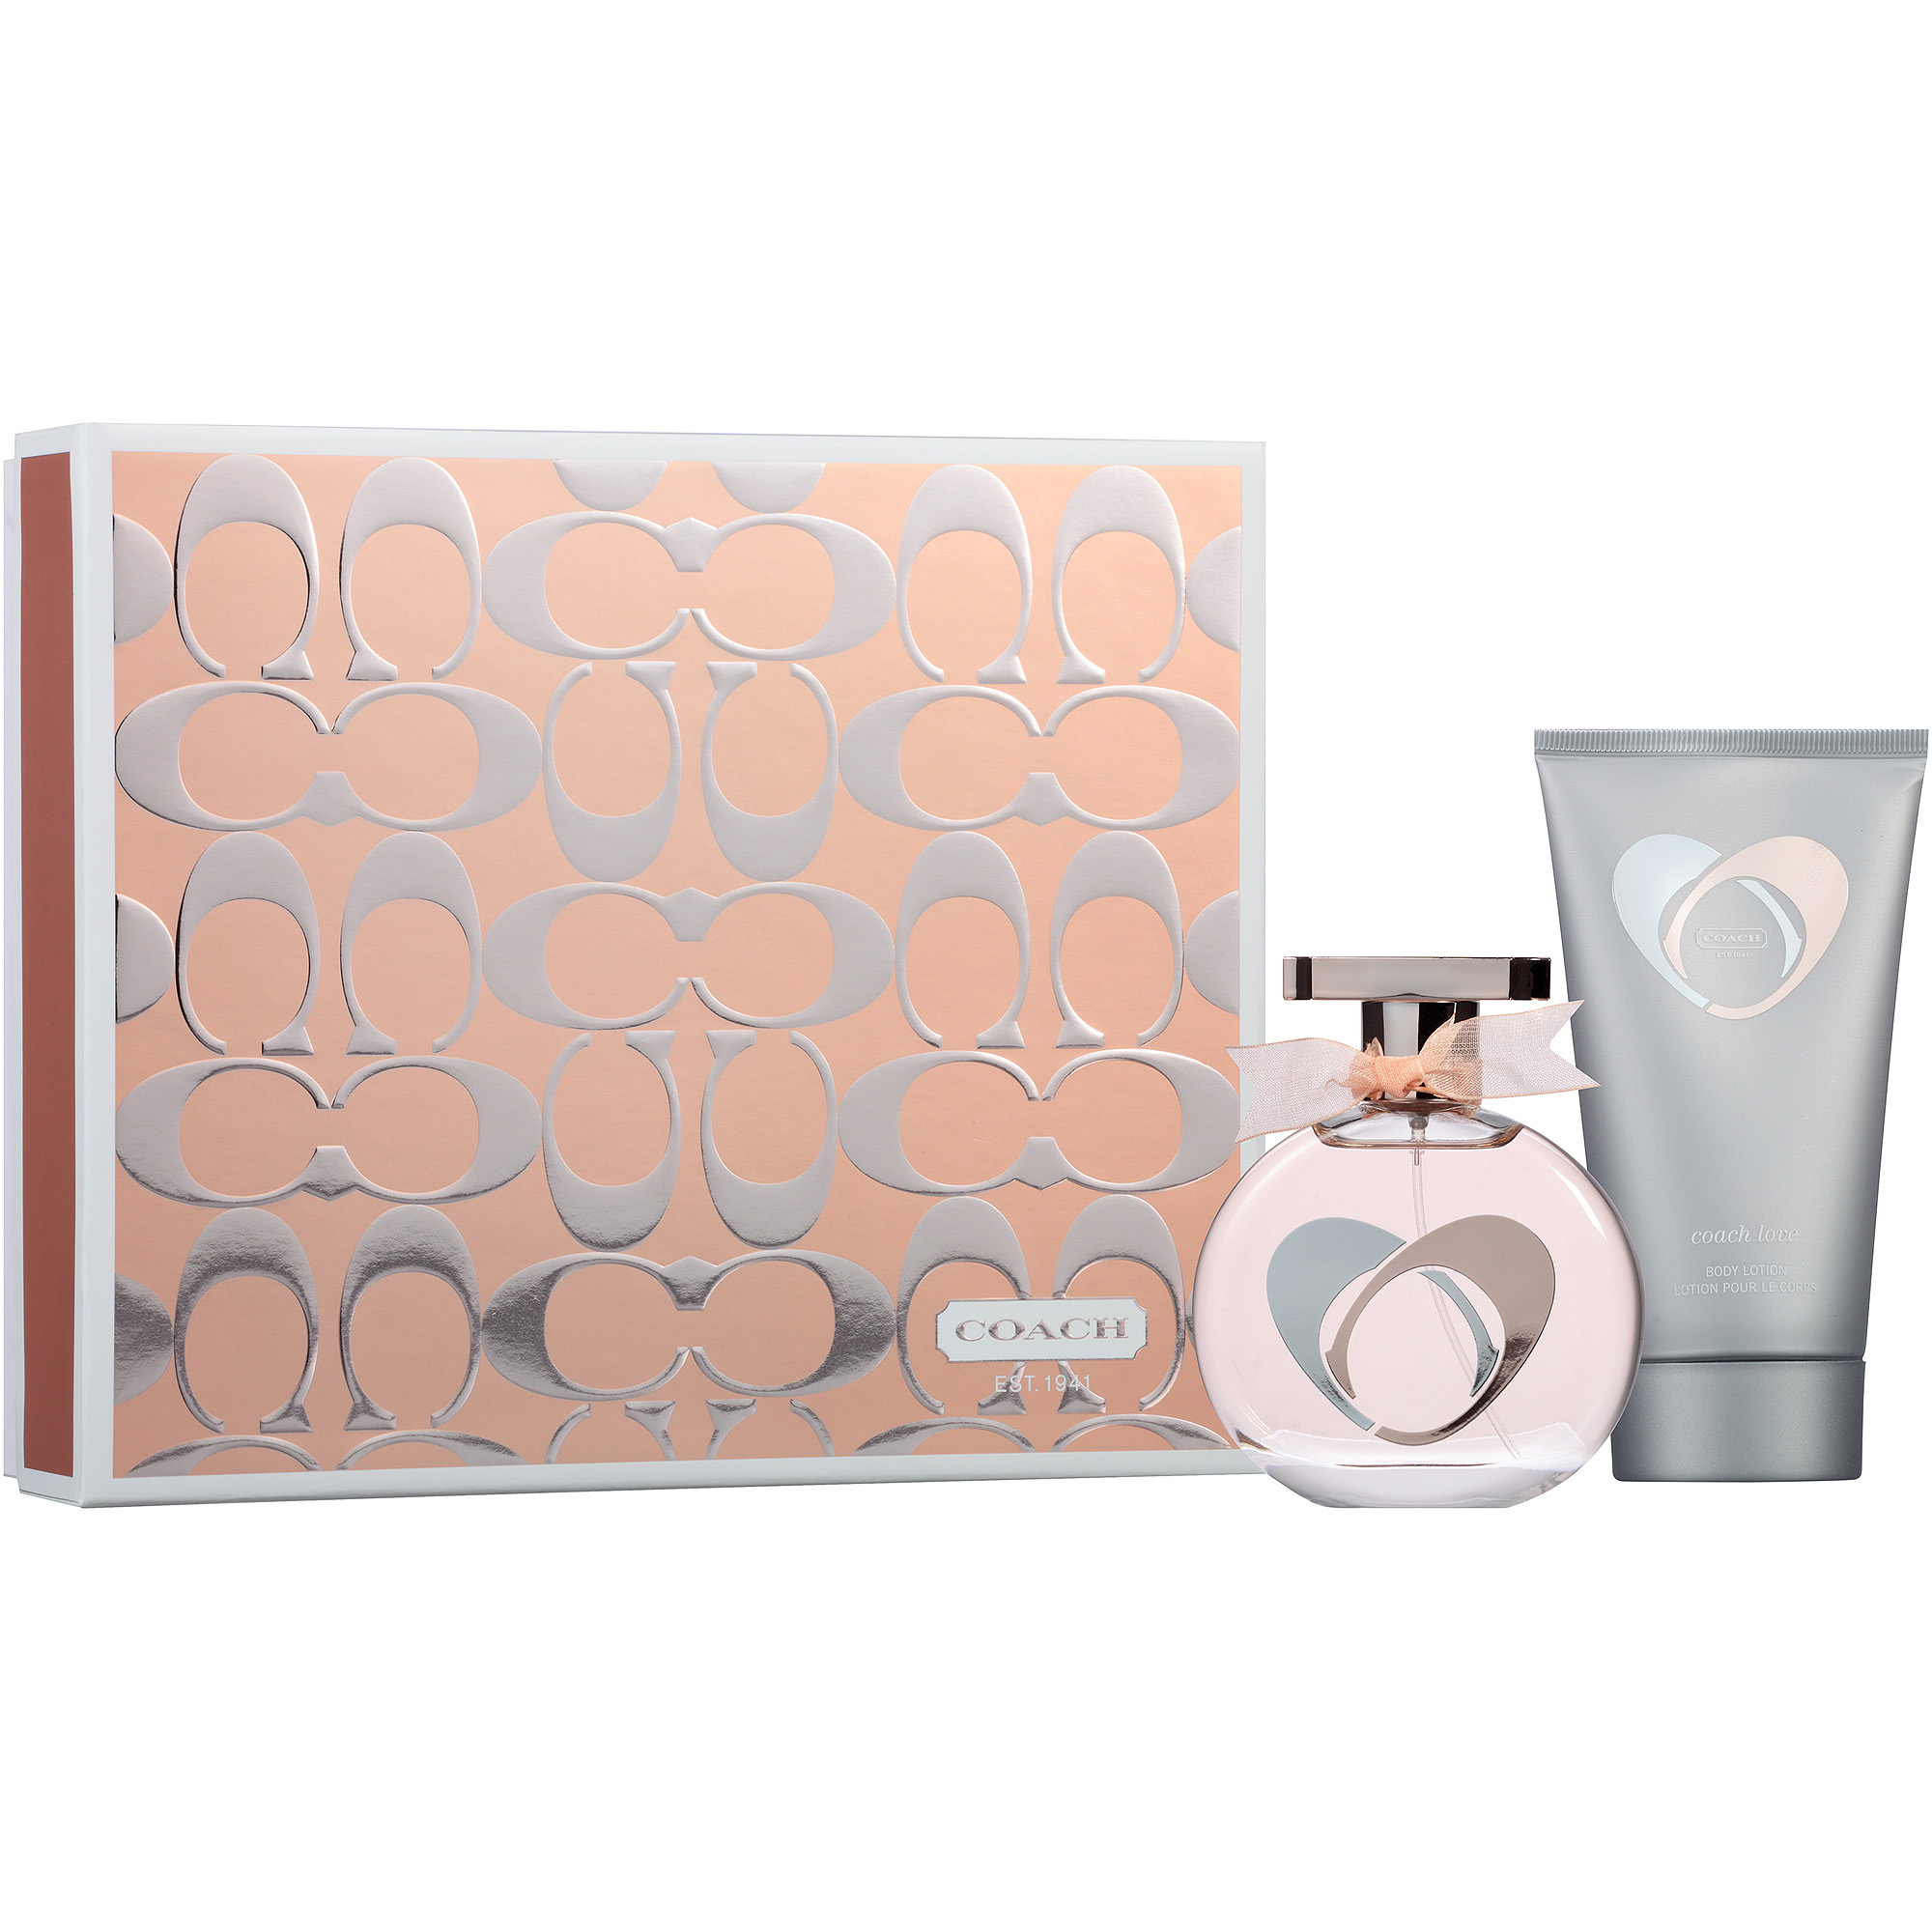 Coach Fragrance Gift Sets